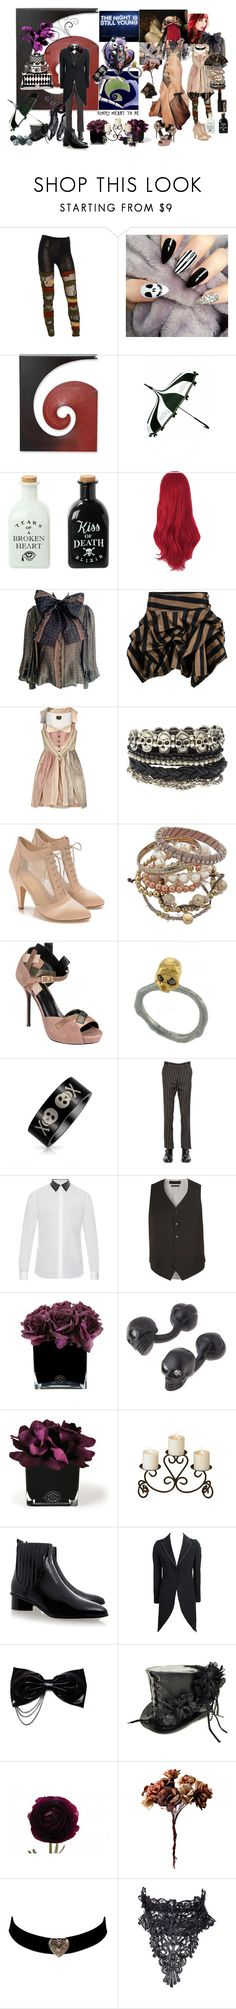 """""""We can live like Jack and Sally"""" by verysmallgoddess ❤ liked on Polyvore featuring Junya Watanabe, NOVICA, MAC Cosmetics, Hot Topic, J. Mendel, Pauline Trigère, Kelly Ewing, Vivienne Westwood Anglomania, ASOS and Loeffler Randall"""